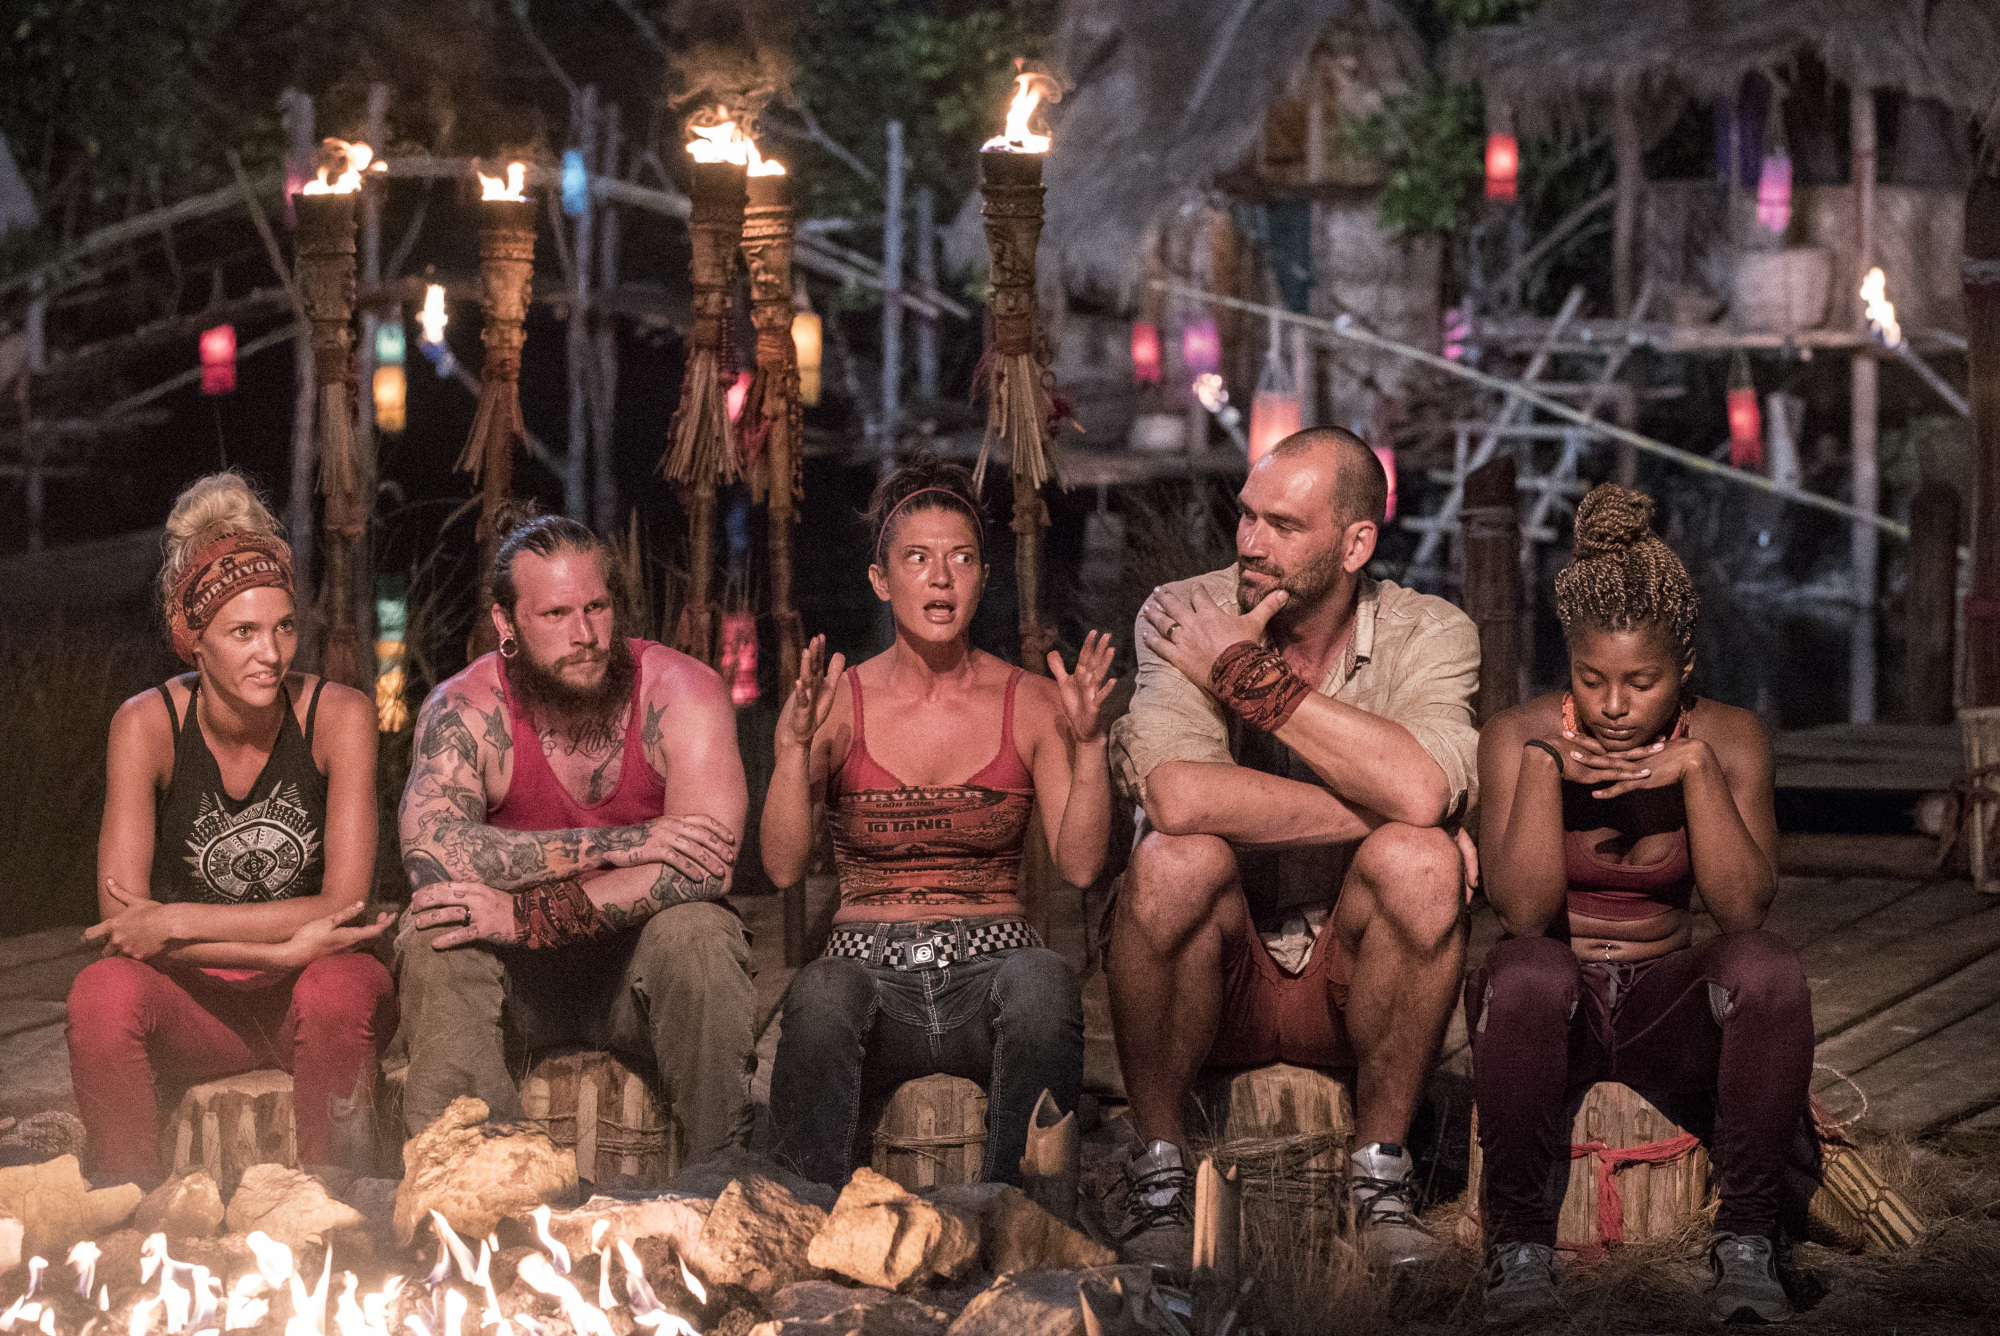 Jennifer Lanzetti pleads her case at Tribal Council on Survivor: Kaoh Rong